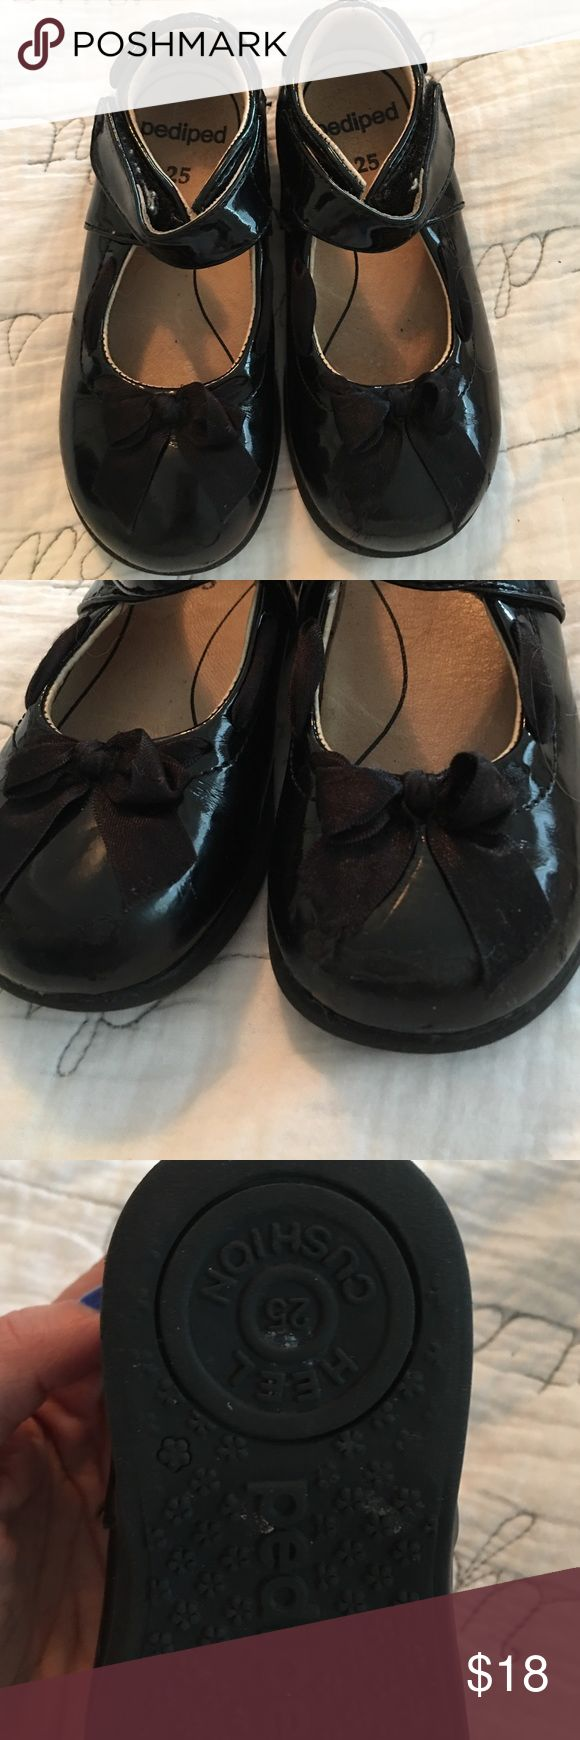 Pediped Patent Leather dress shoes with bow Darling dress shoes with Velcro closure pediped Shoes Dress Shoes